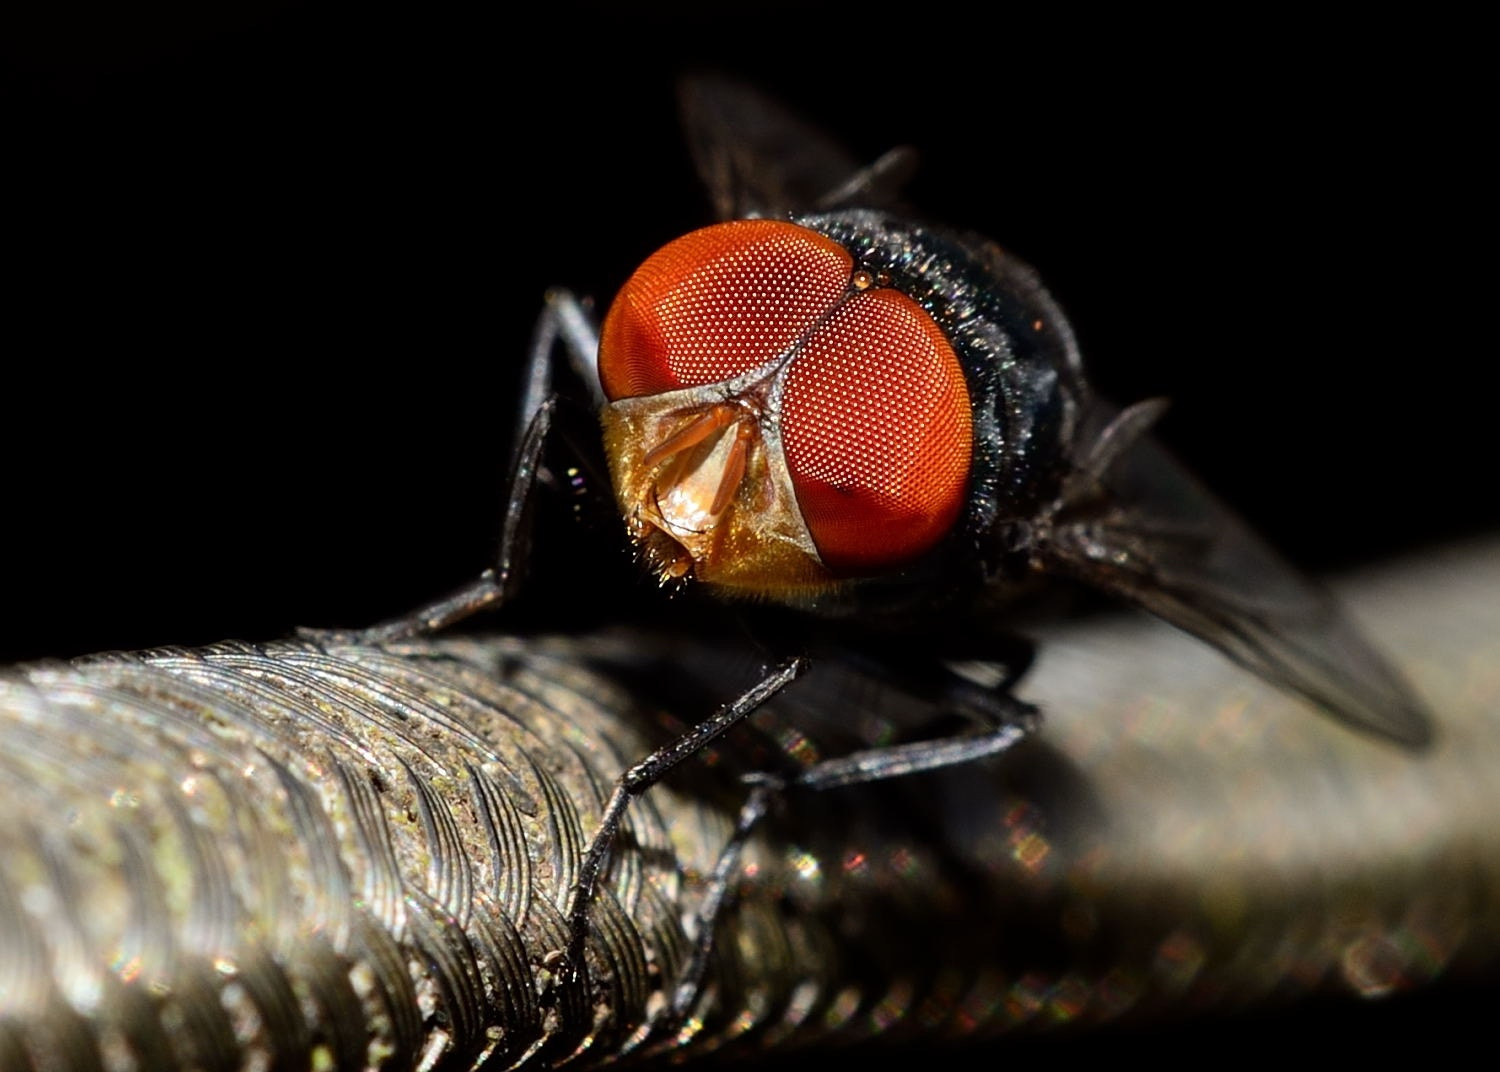 Photograph The Big Red Eyes by heat larx on 500px